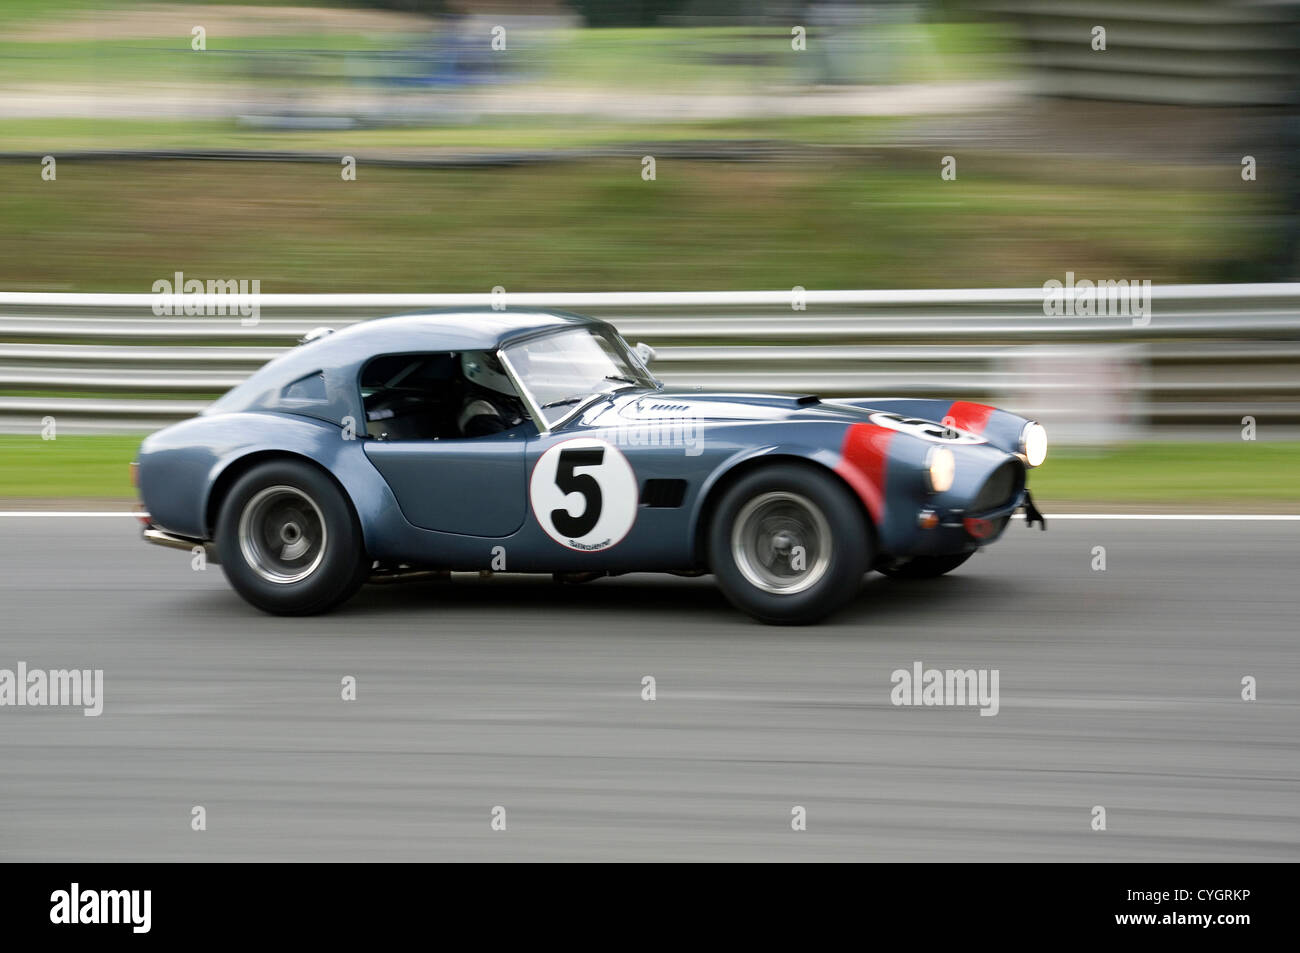 An Ac Cobra Hardtop Classic Racing Car Traveling Fast On A